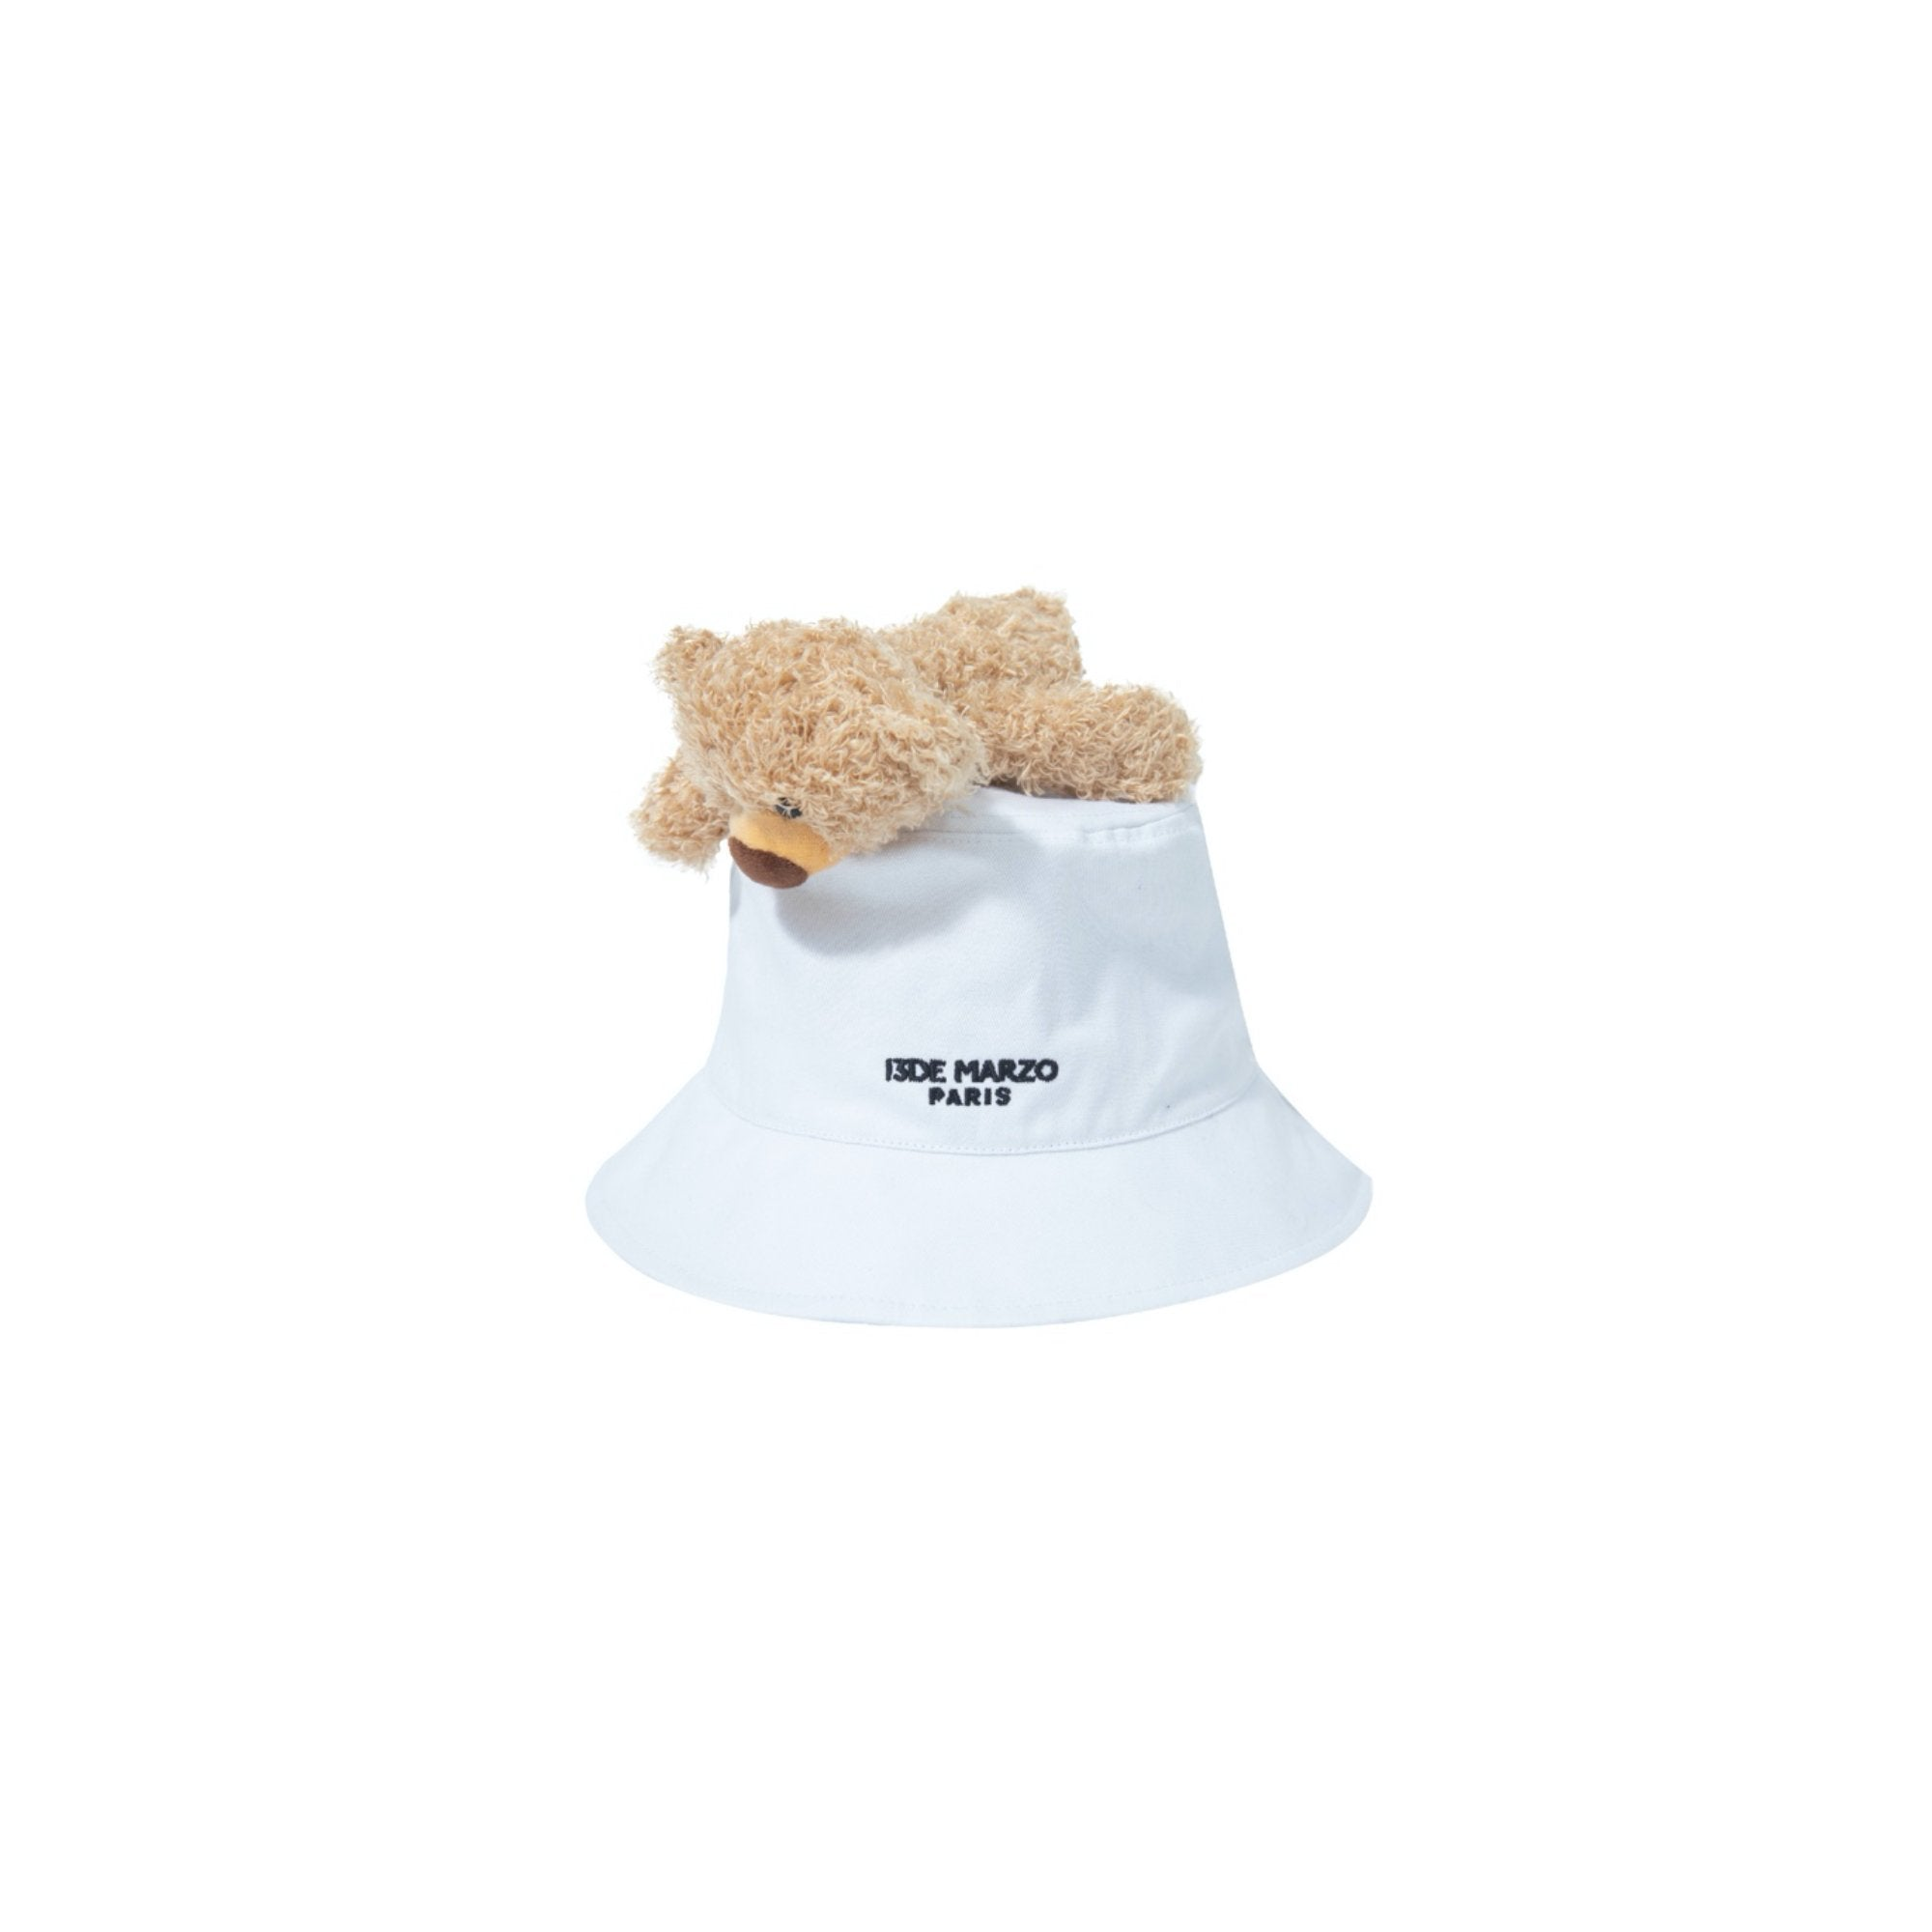 13 DE MARZO Lazy Teddy Bear Bucket Hat White | MADA IN CHINA